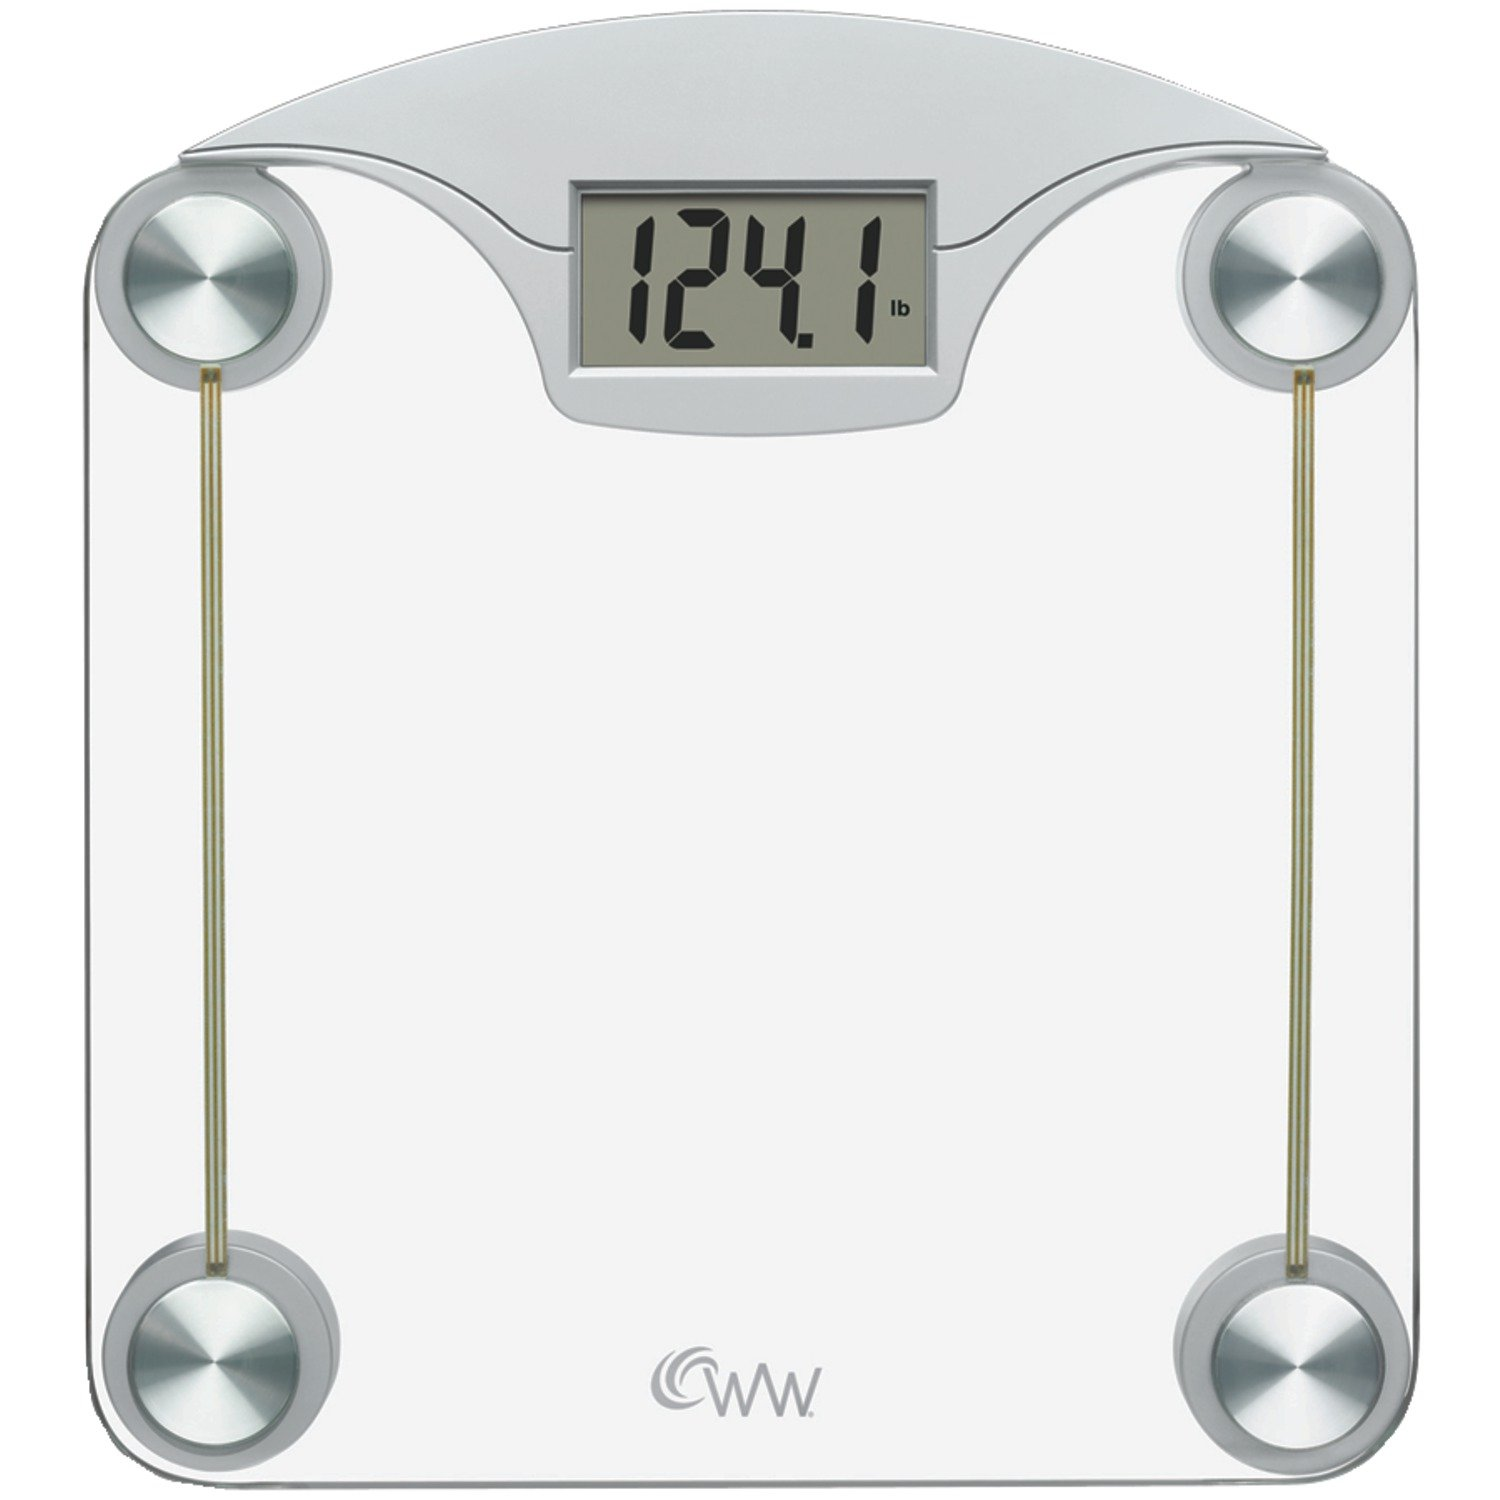 Amazon weight watchers by conair digital glass bathroom scale amazon weight watchers by conair digital glass bathroom scale 400 lb capacity high strength tempered safety glass bath scale health personal care nvjuhfo Images